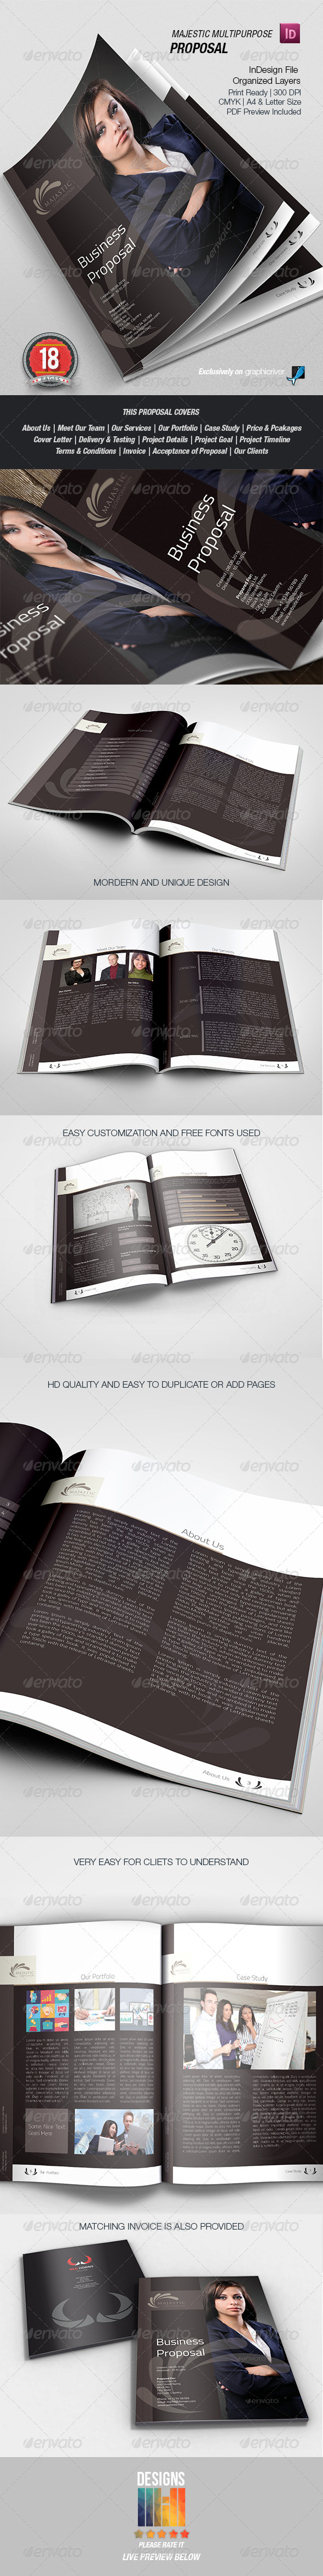 Majestic Business Proposal - Proposals & Invoices Stationery